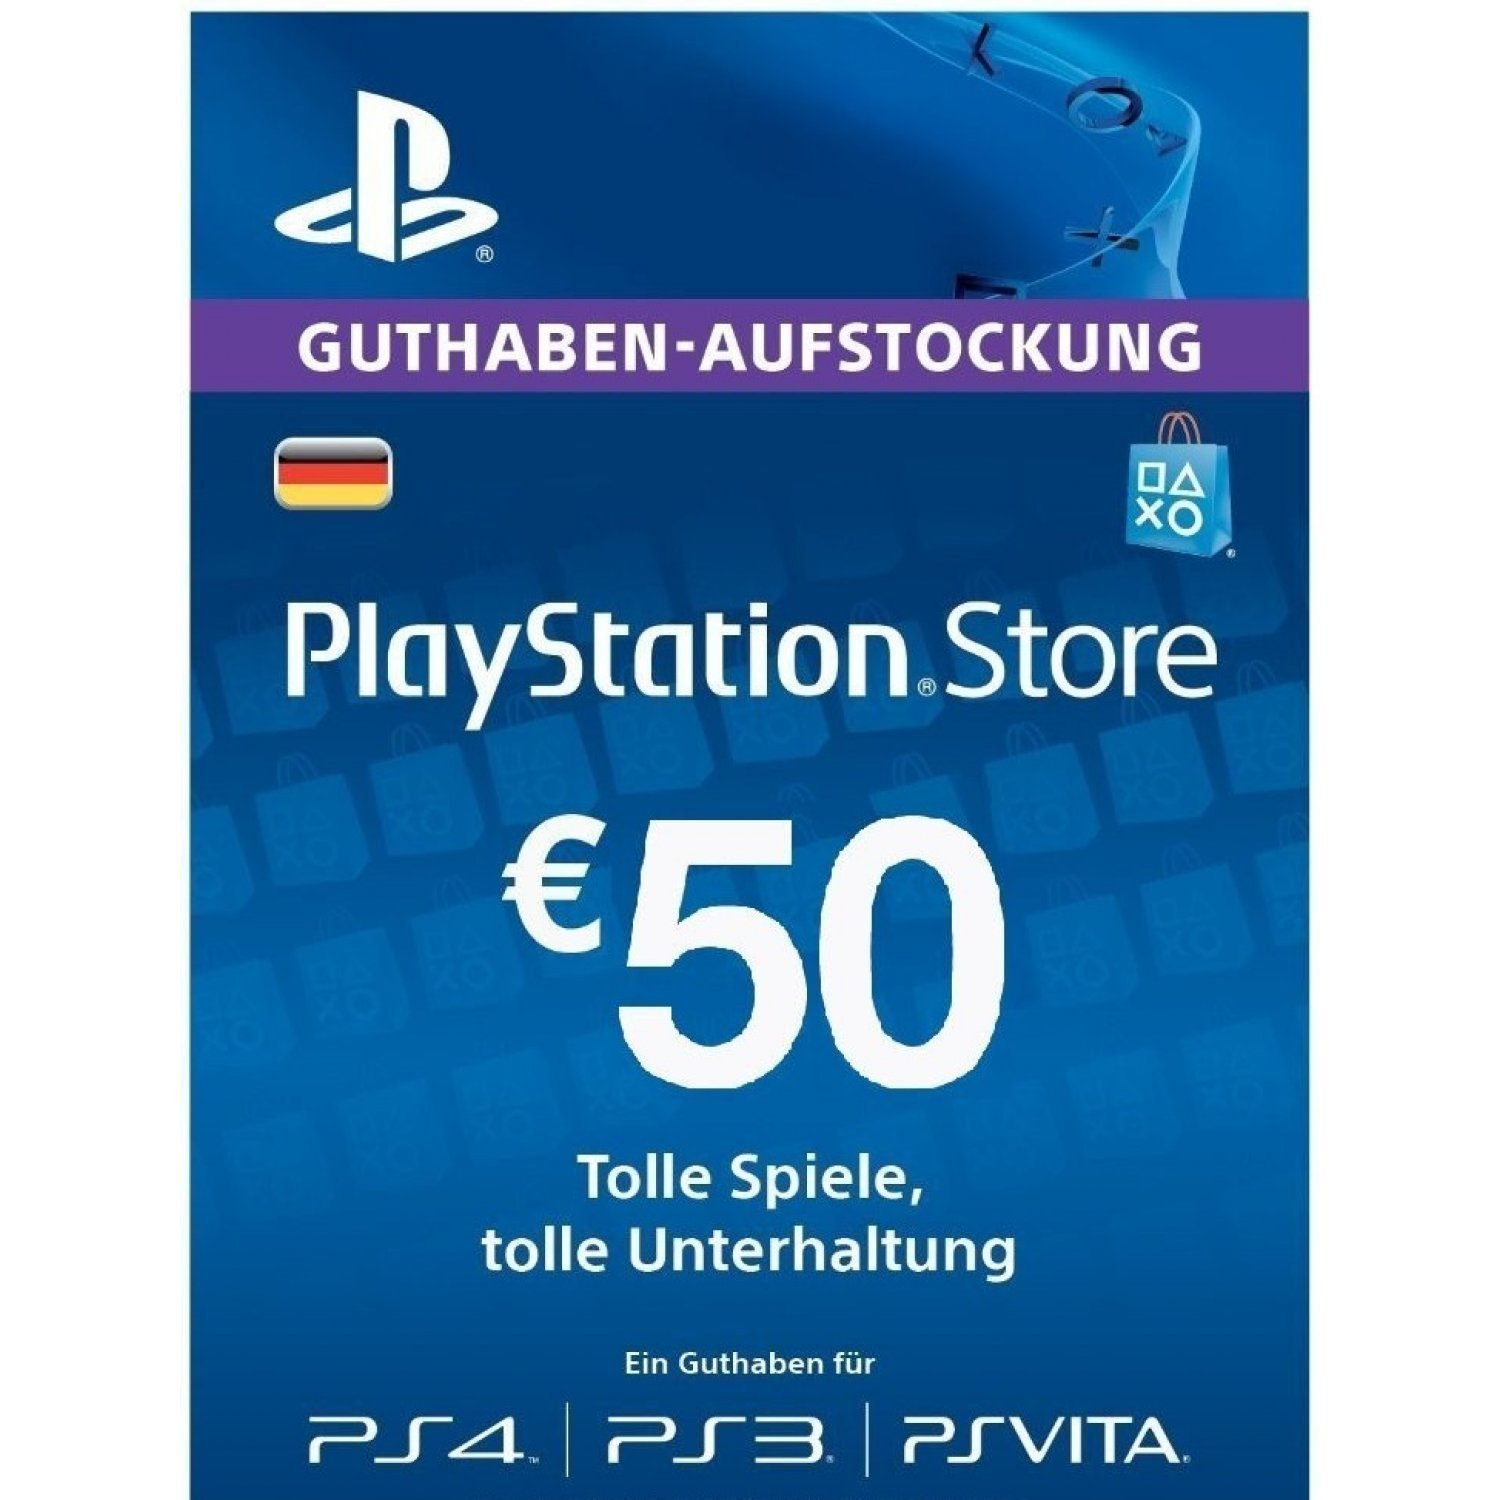 psn card 50 eur playstation network germany digital. Black Bedroom Furniture Sets. Home Design Ideas